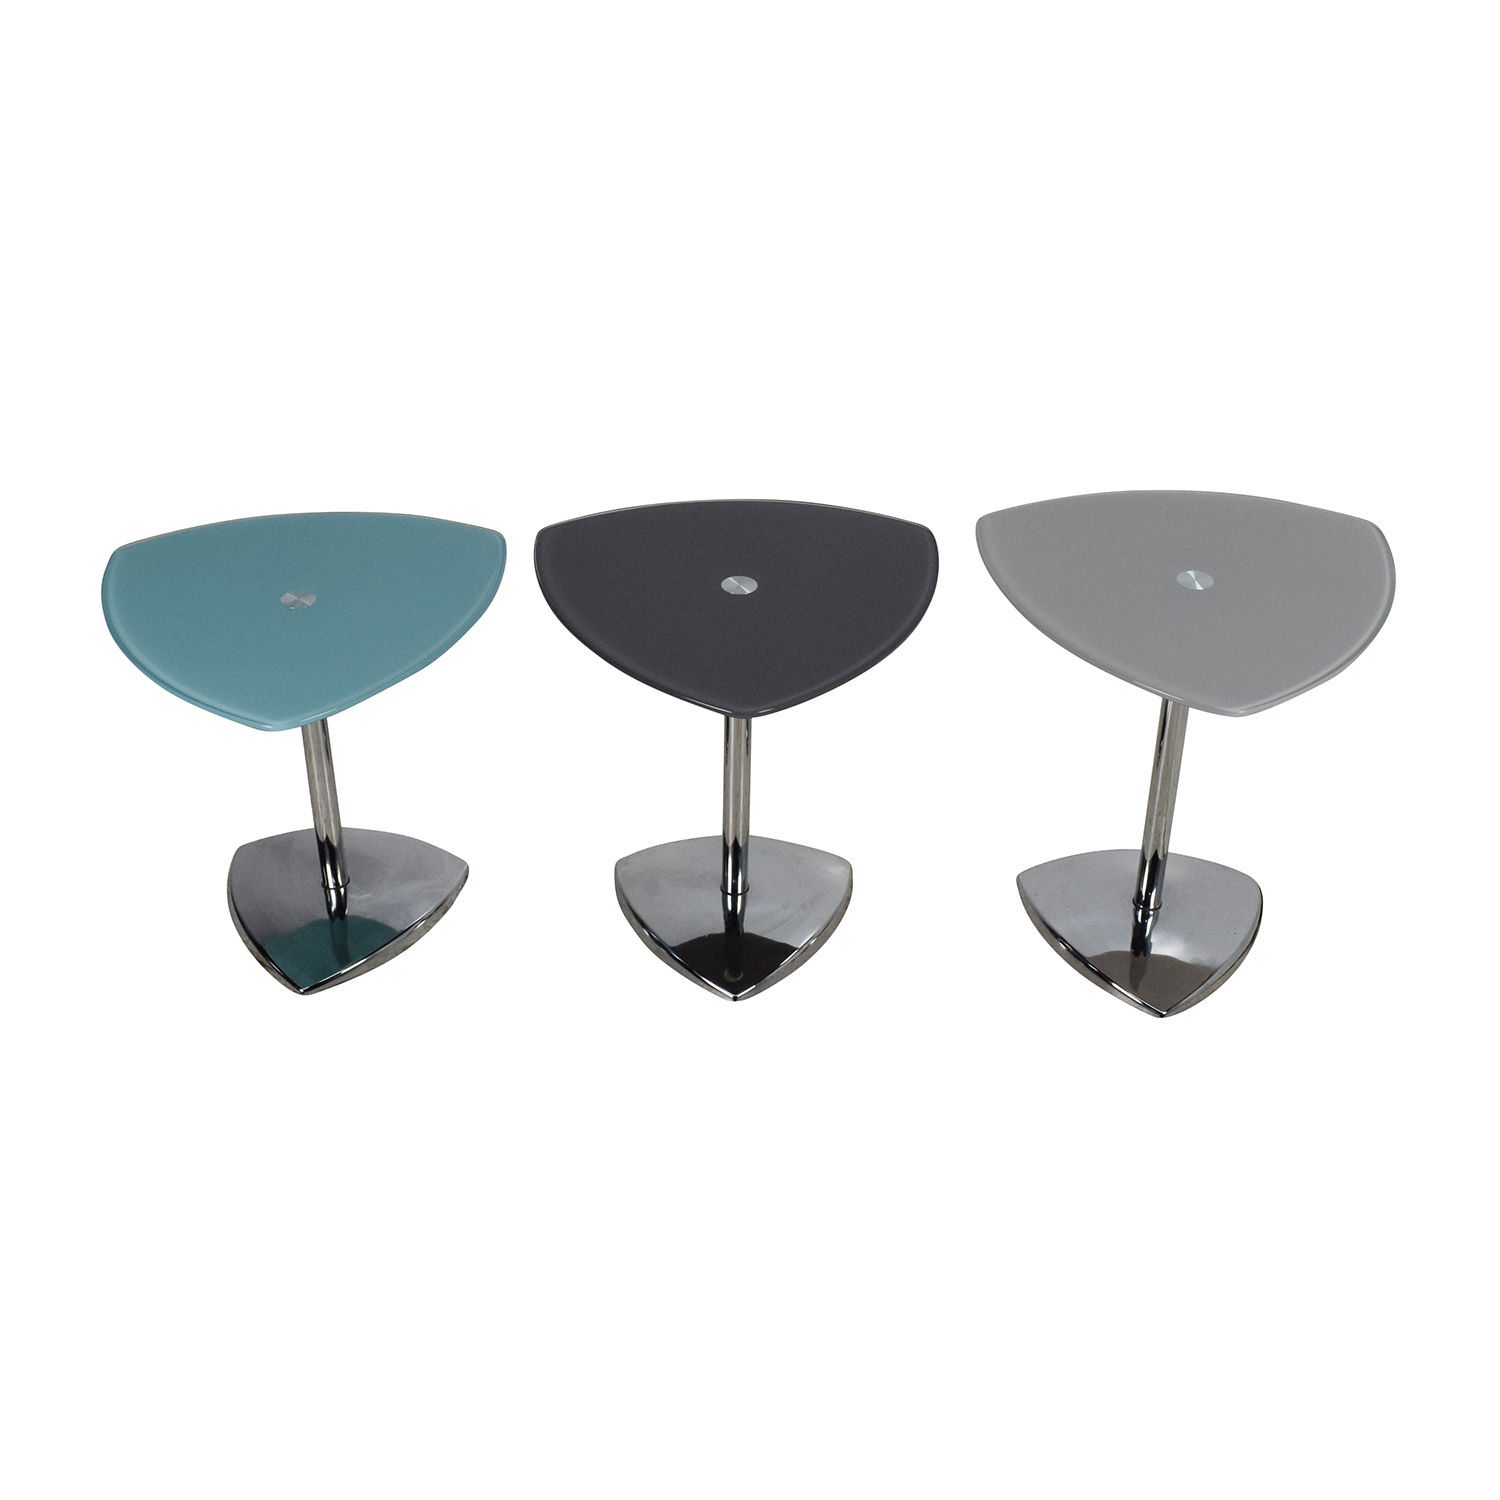 Set of 3 Glass Side Tables